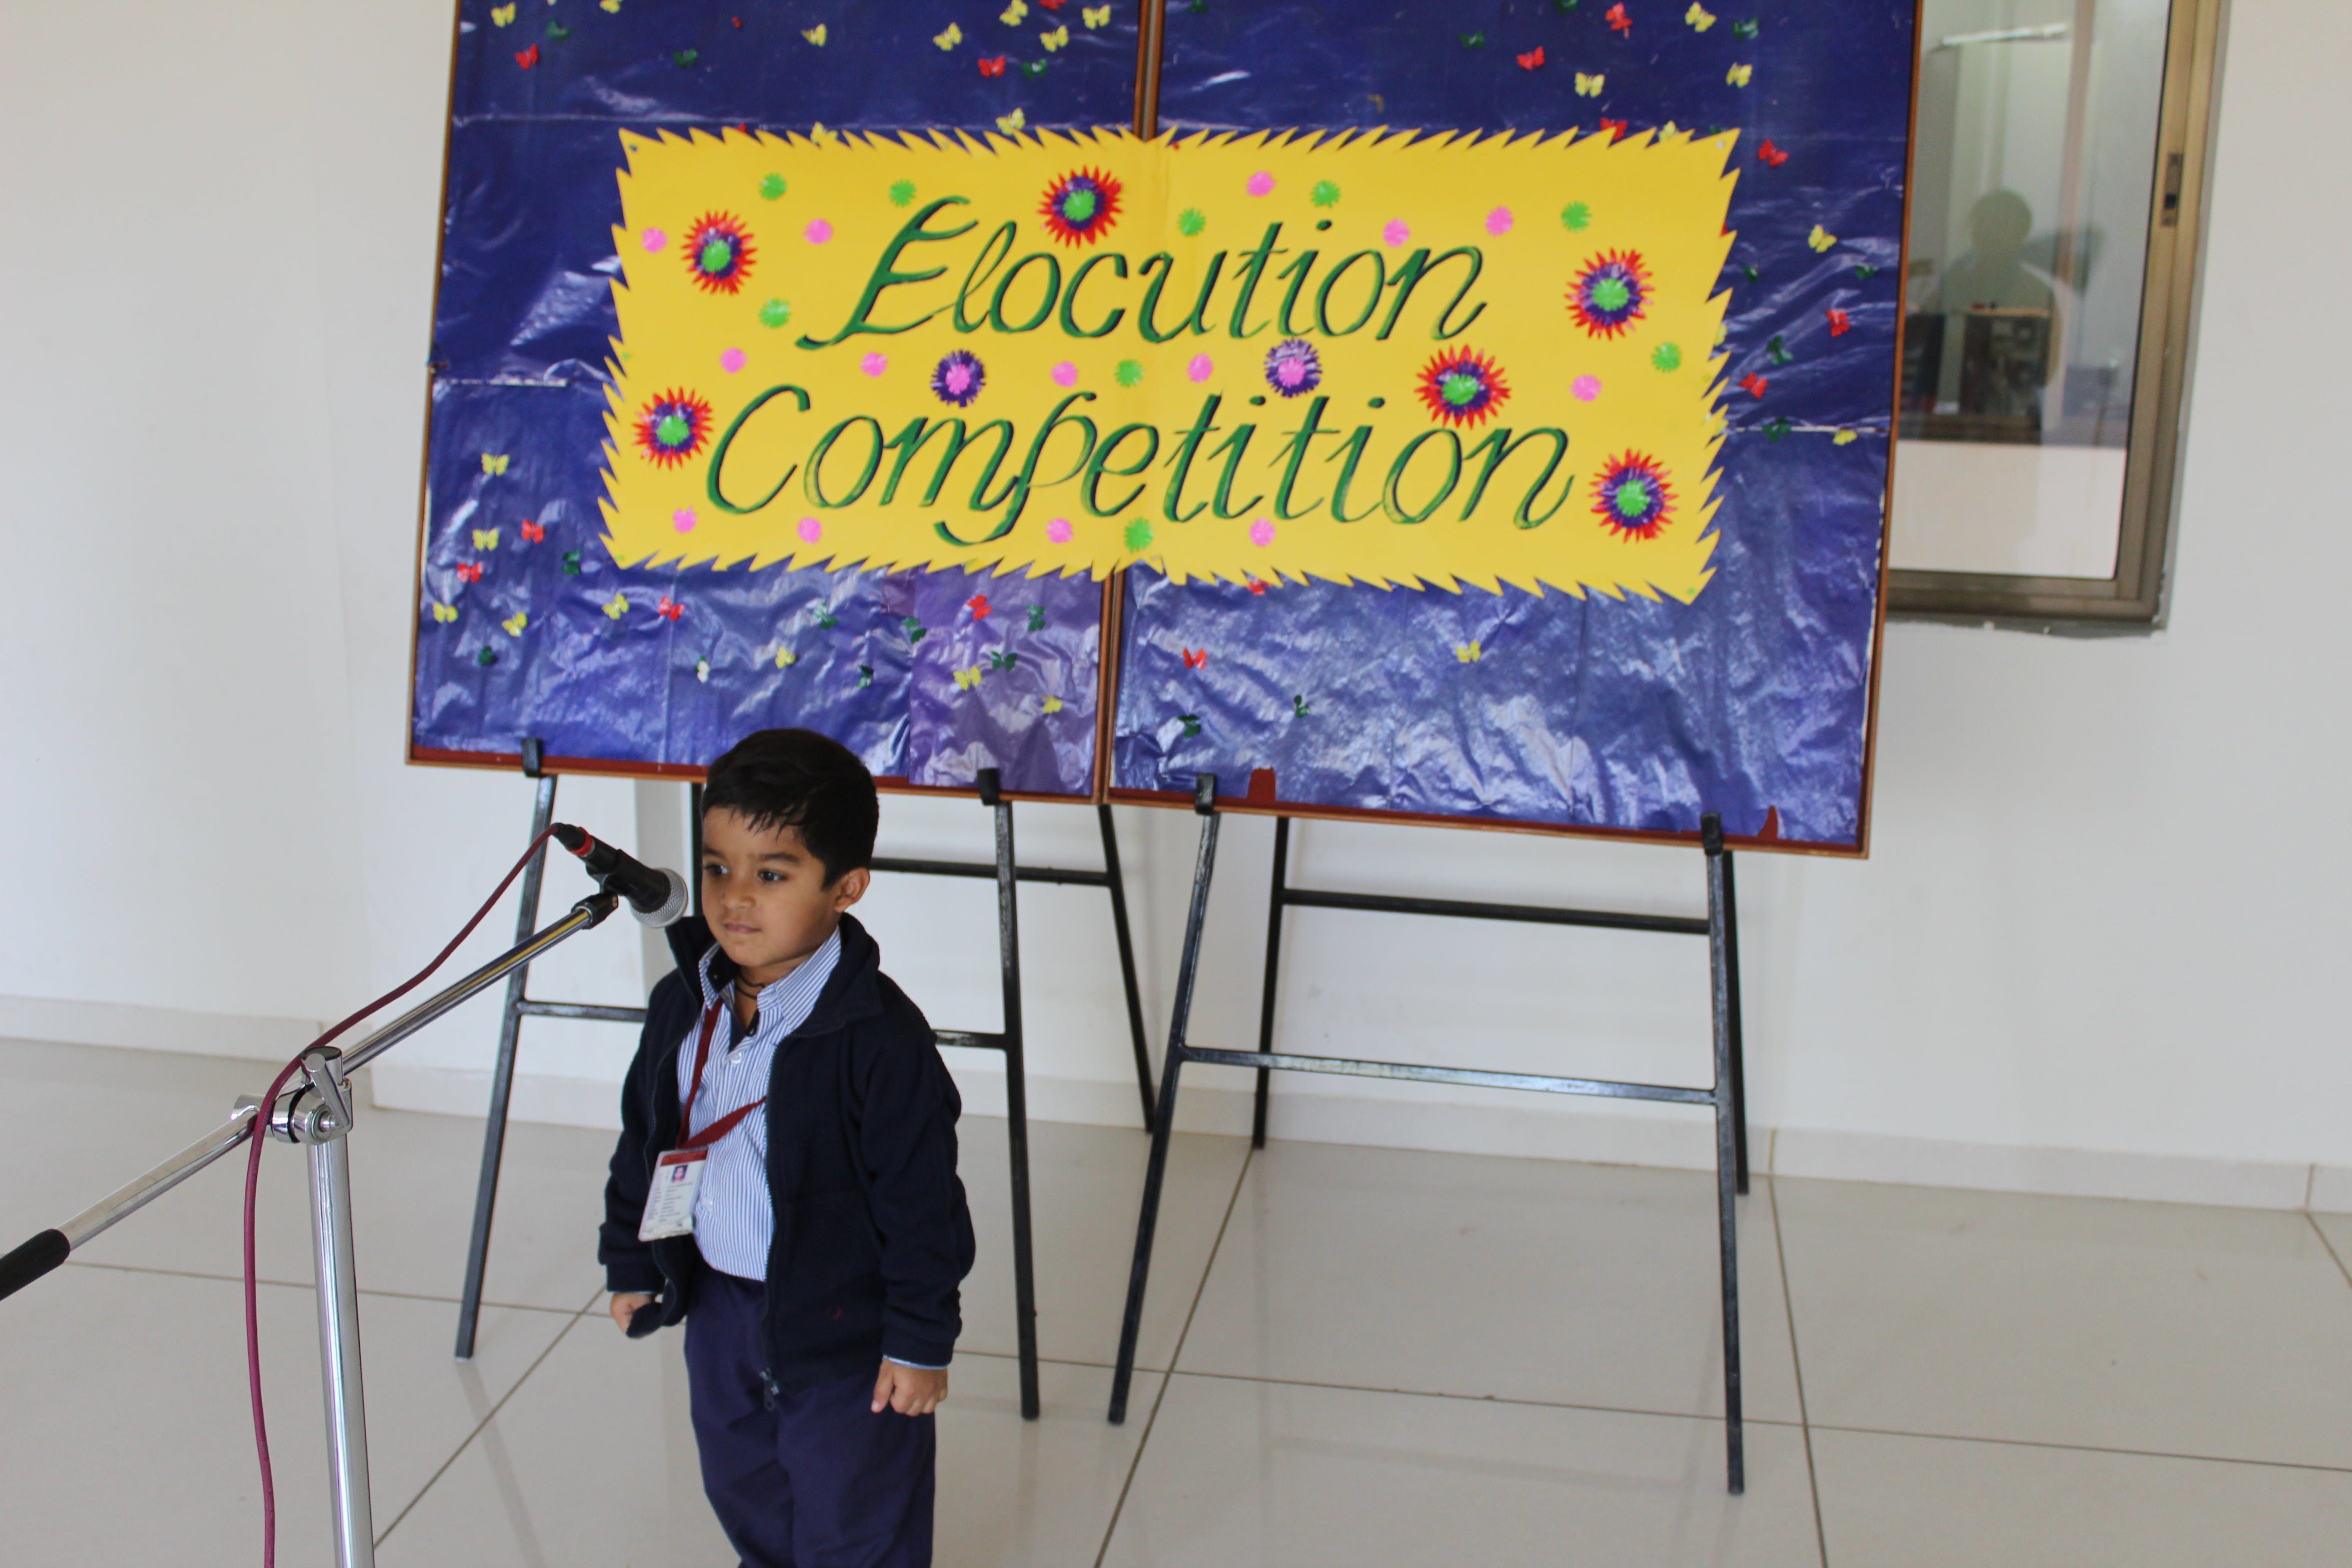 Elocution Competition.